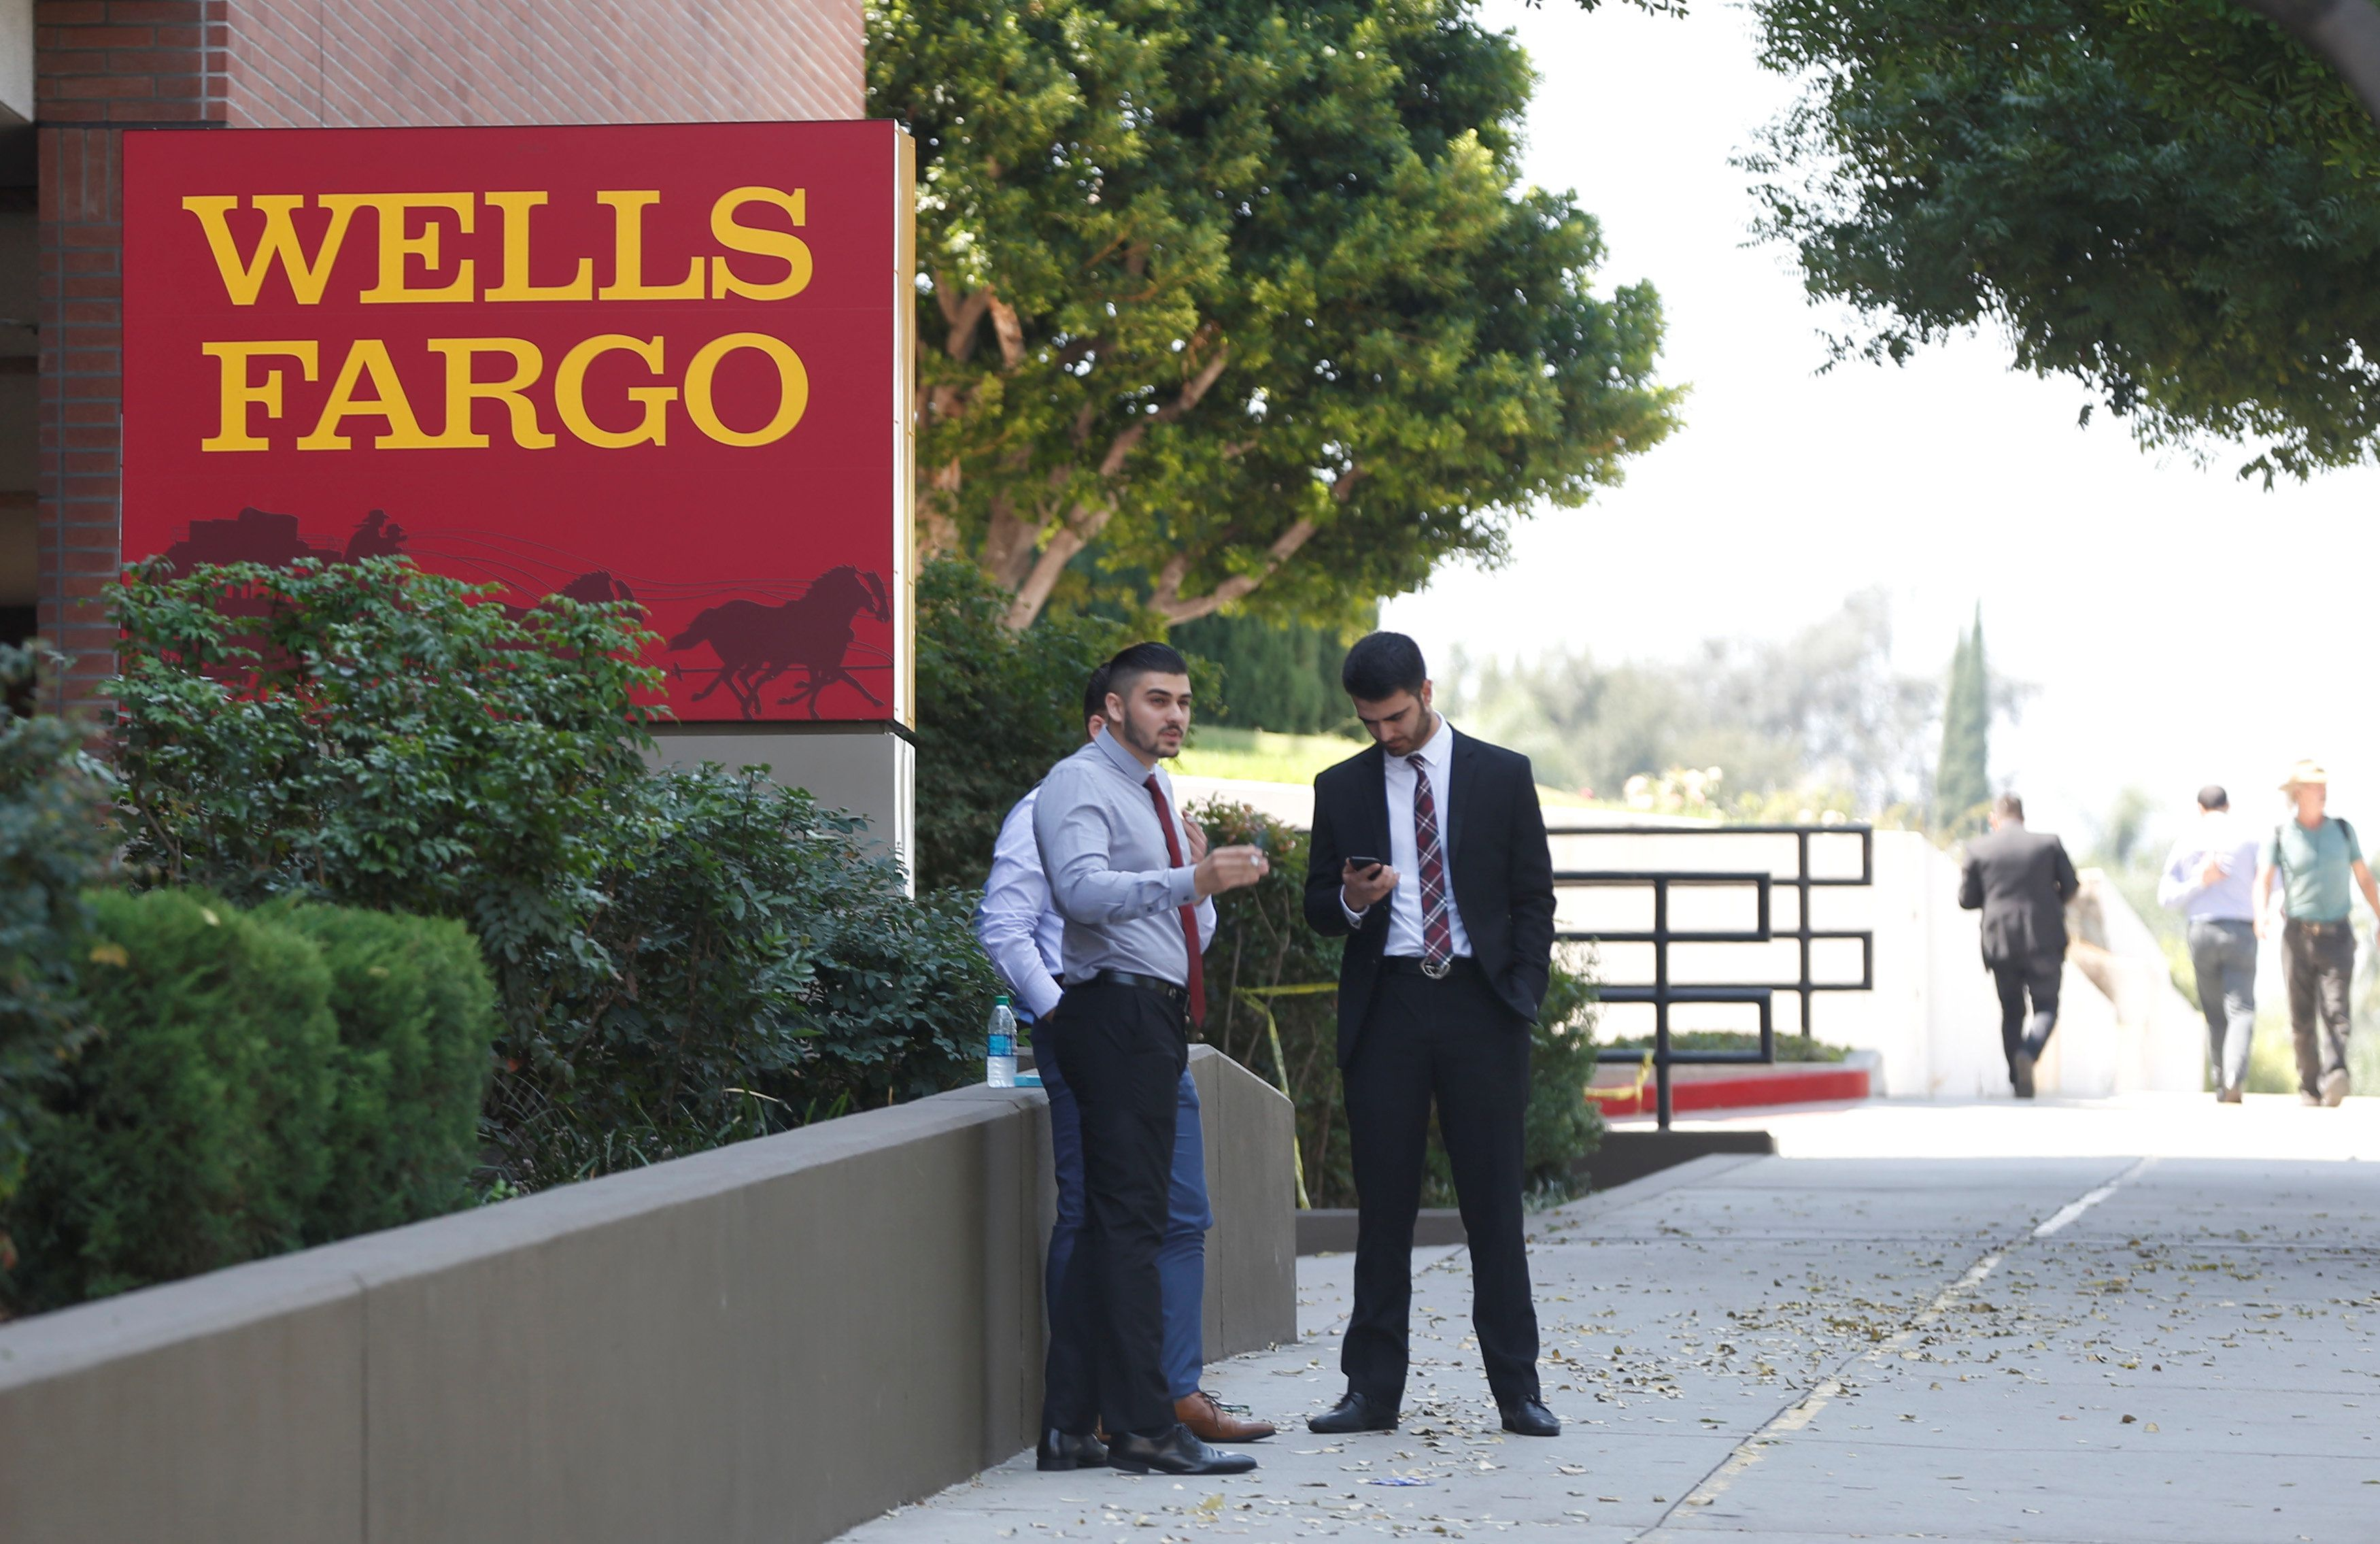 People stand by a Wells Fargo banking location in Pasadena, California, U.S., September 8, 2017. REUTERS/Mario Anzuoni